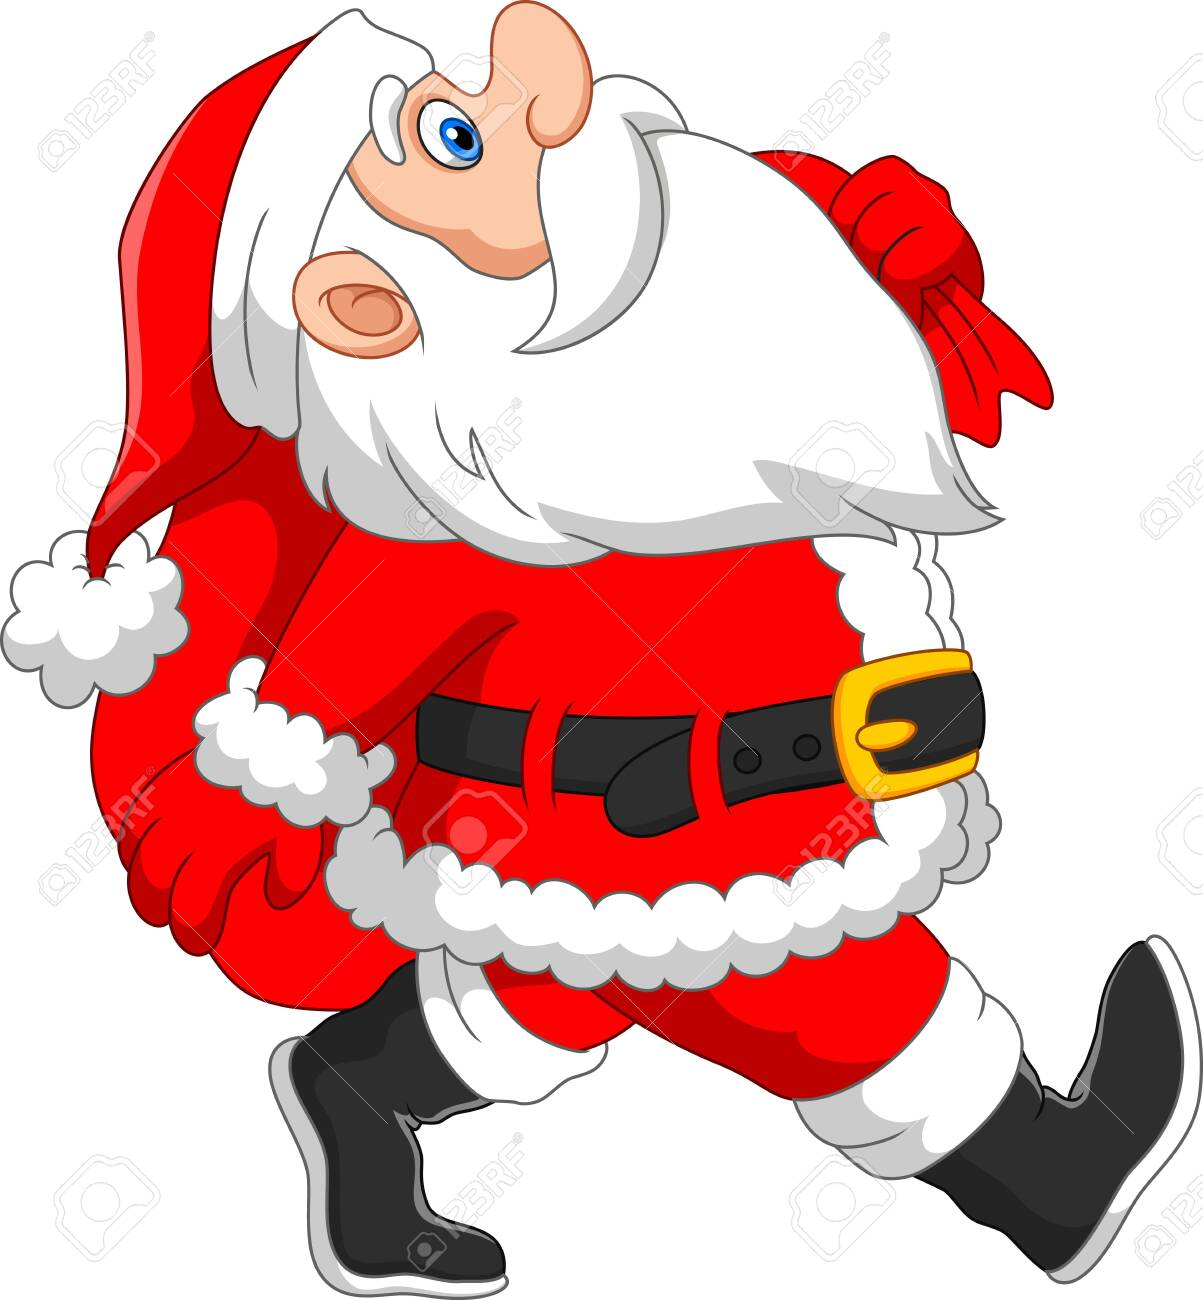 Santa walks with a sack of gifts - 135376958